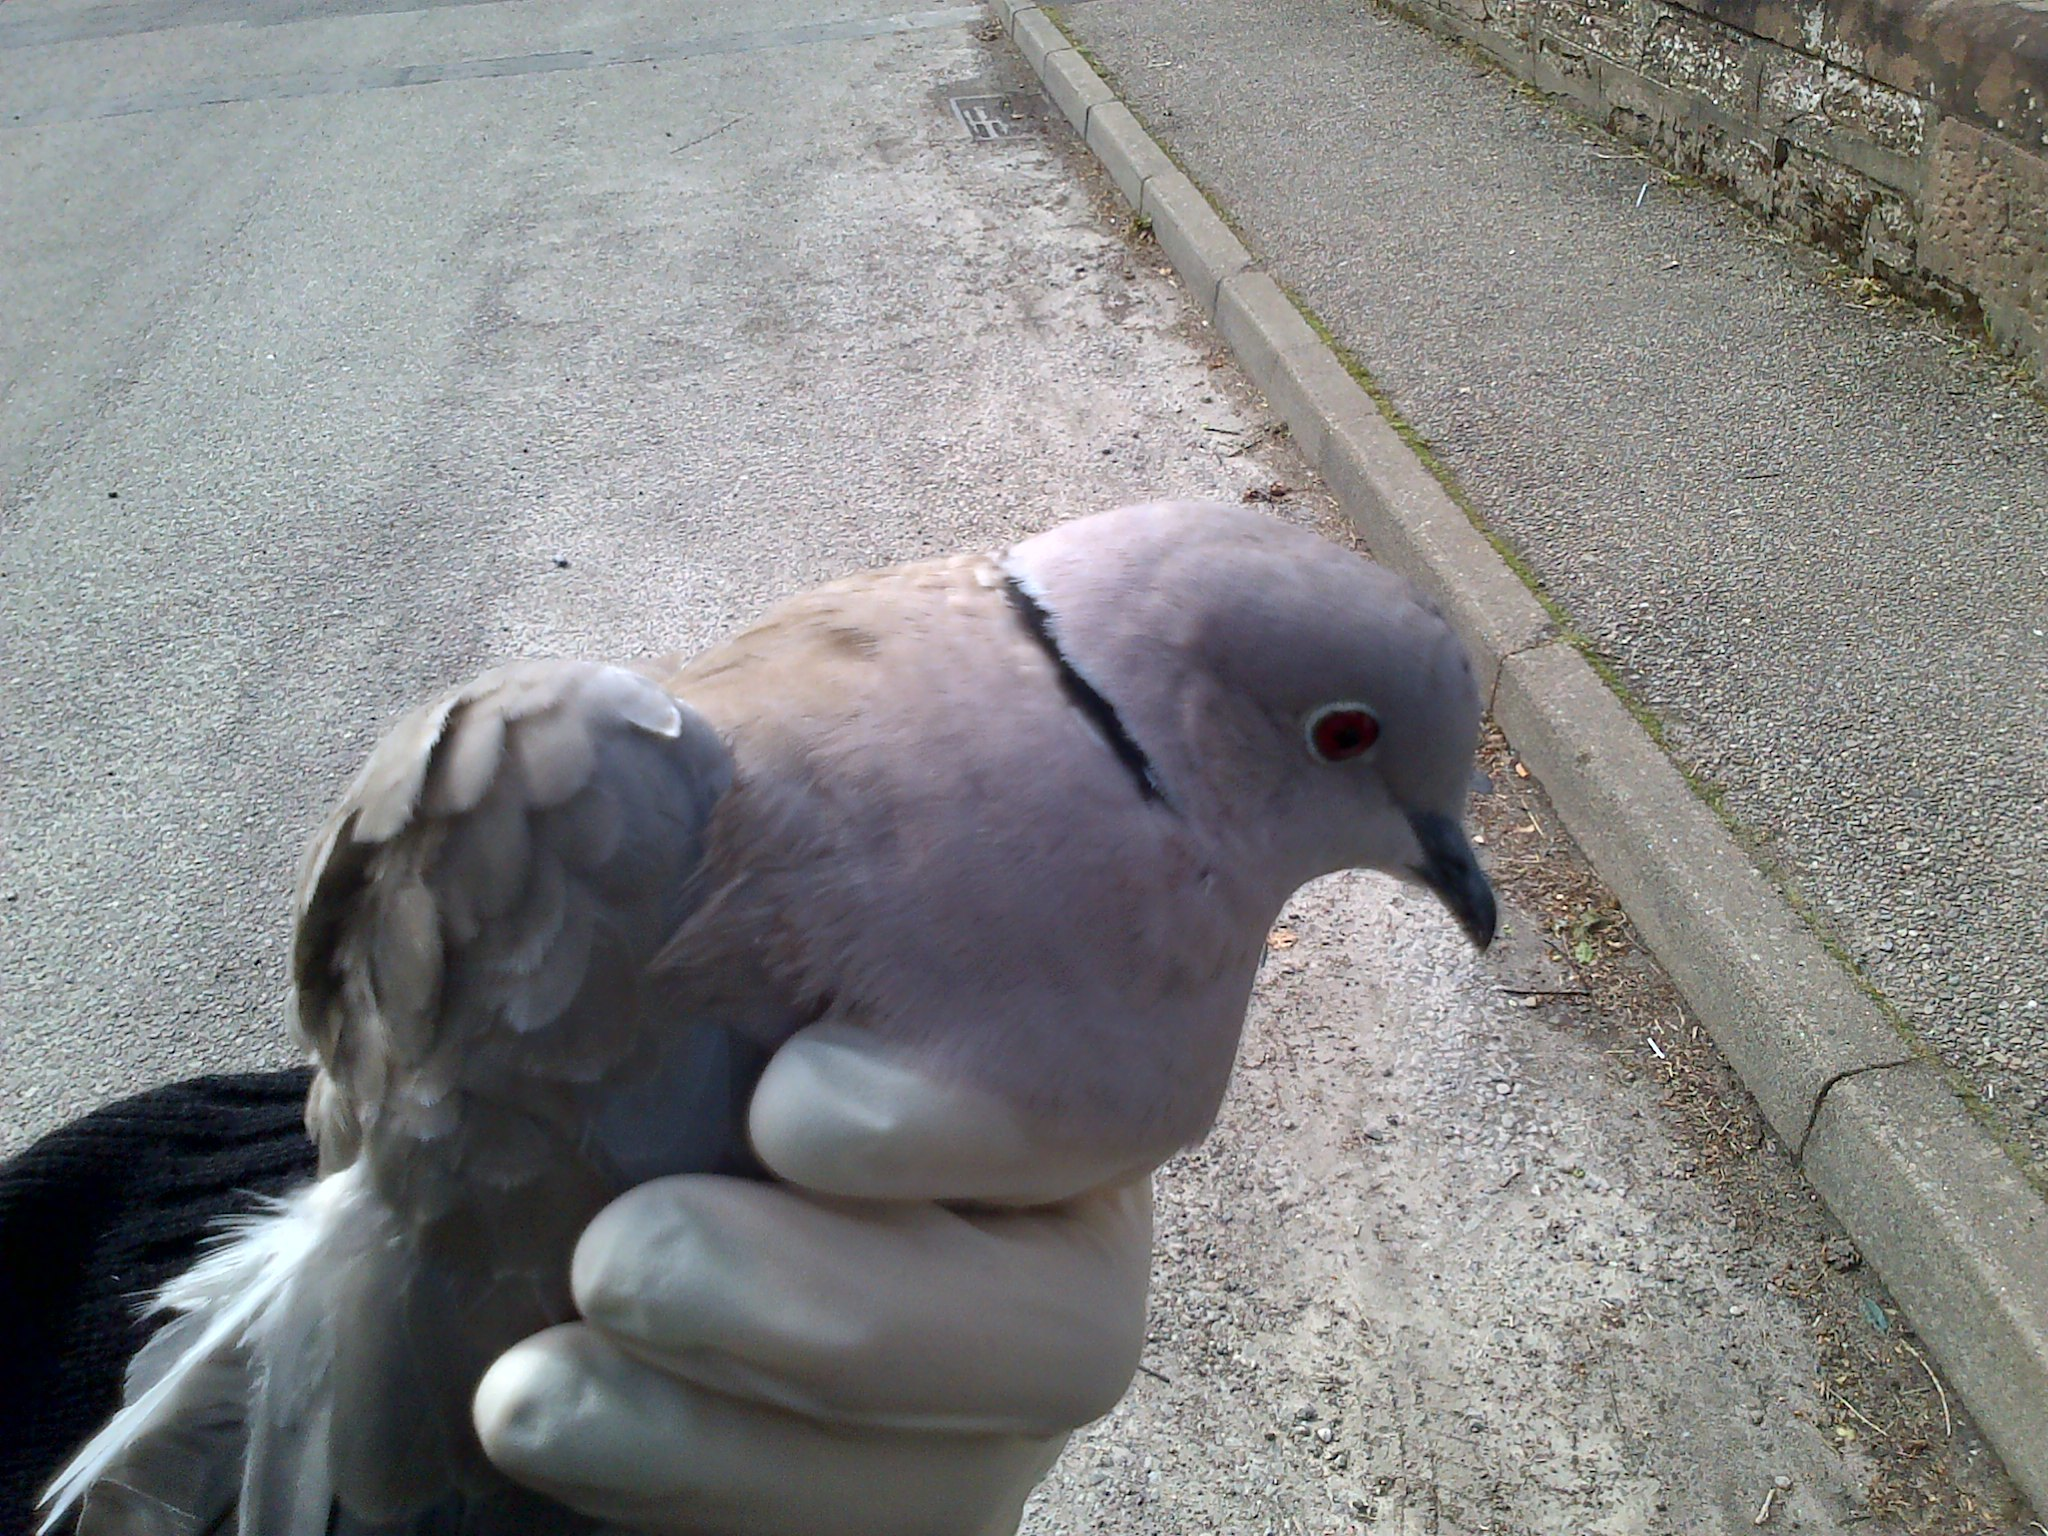 The dove was rescued from a lantern in Evanton